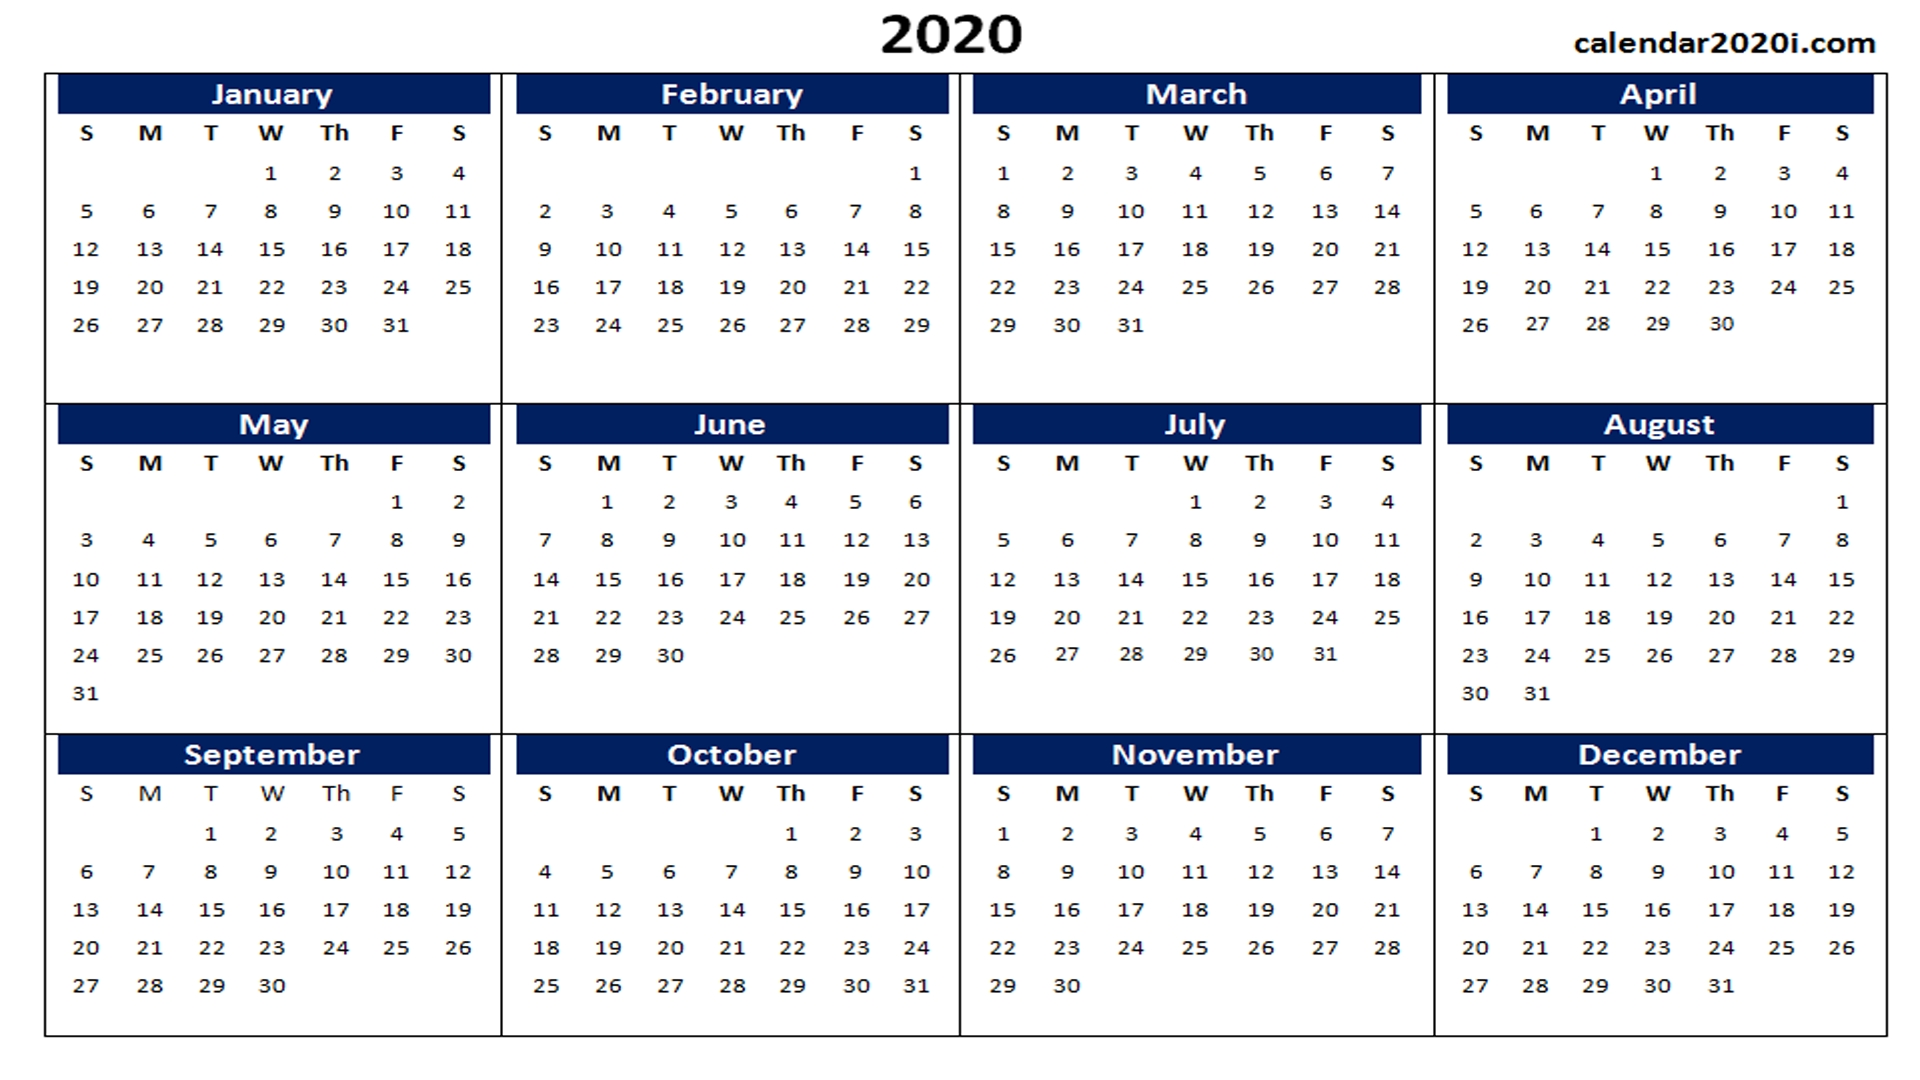 Blank 2020 Calendar Printable Templates | Calendar 2020-Monthly Calendars 2020 Printable Free 2-Pages Blank